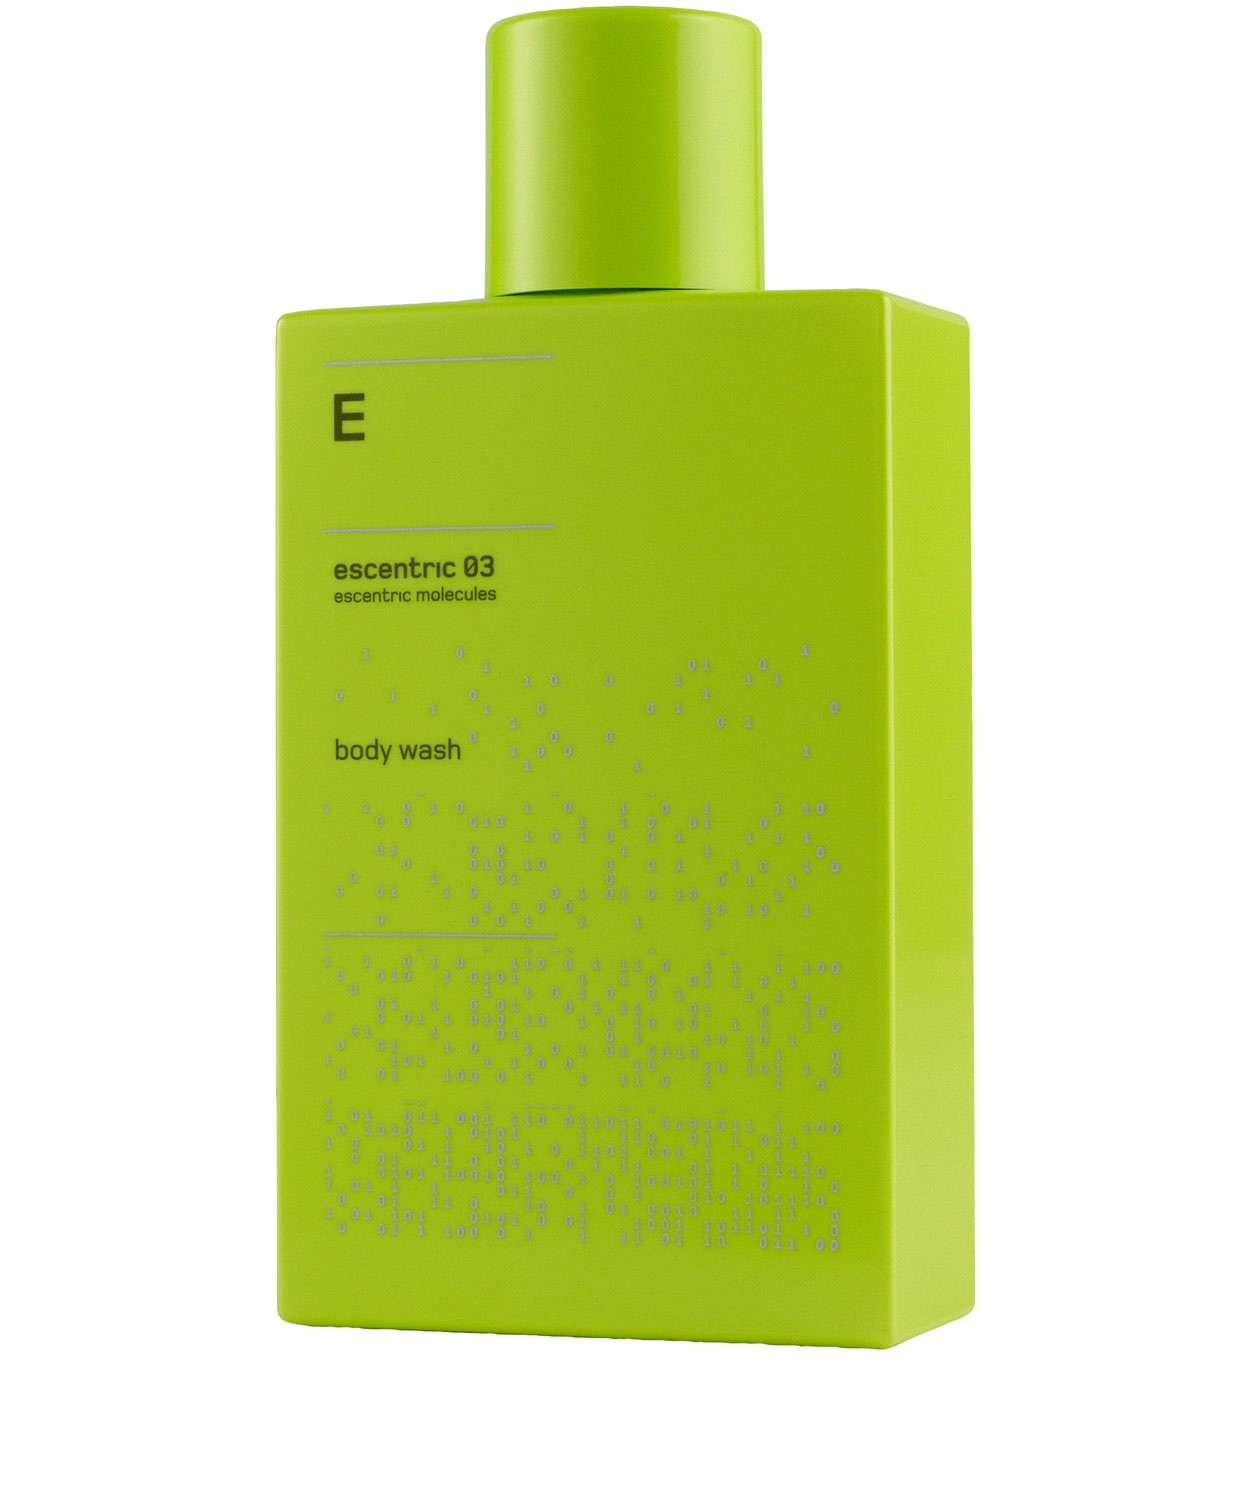 Geza Schoen Escentric 03 Shower Gel